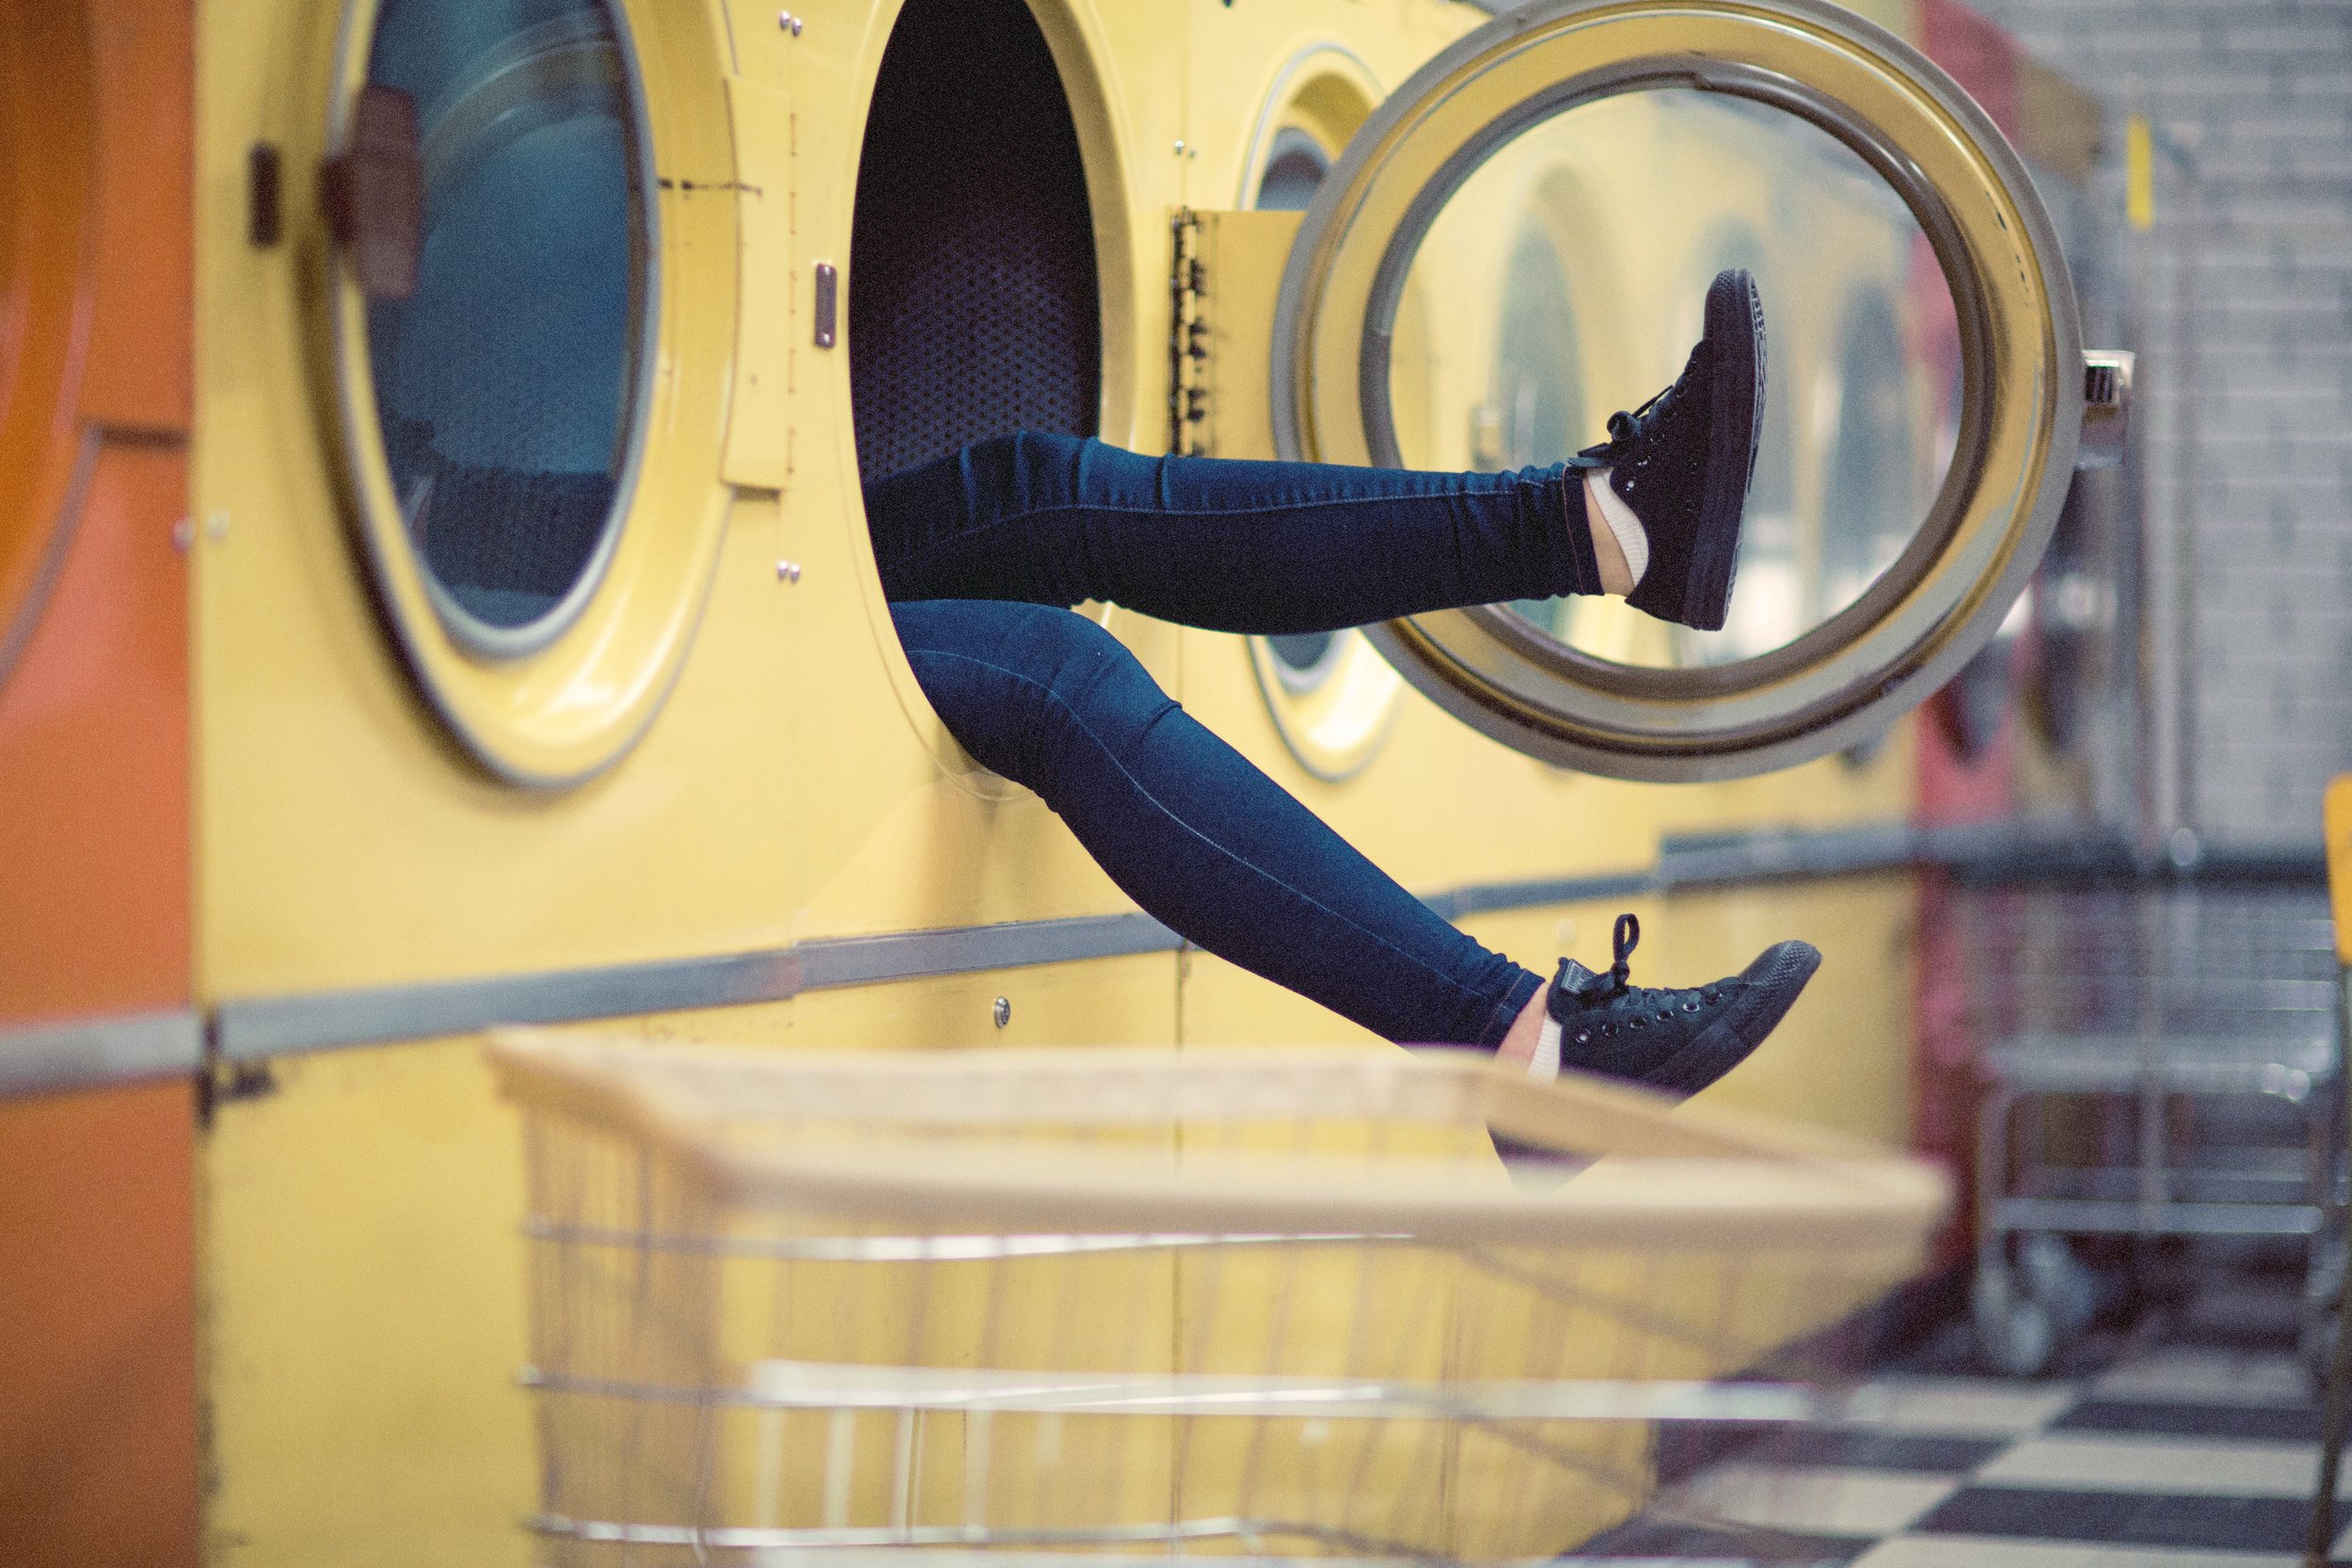 Laundry services for those without power